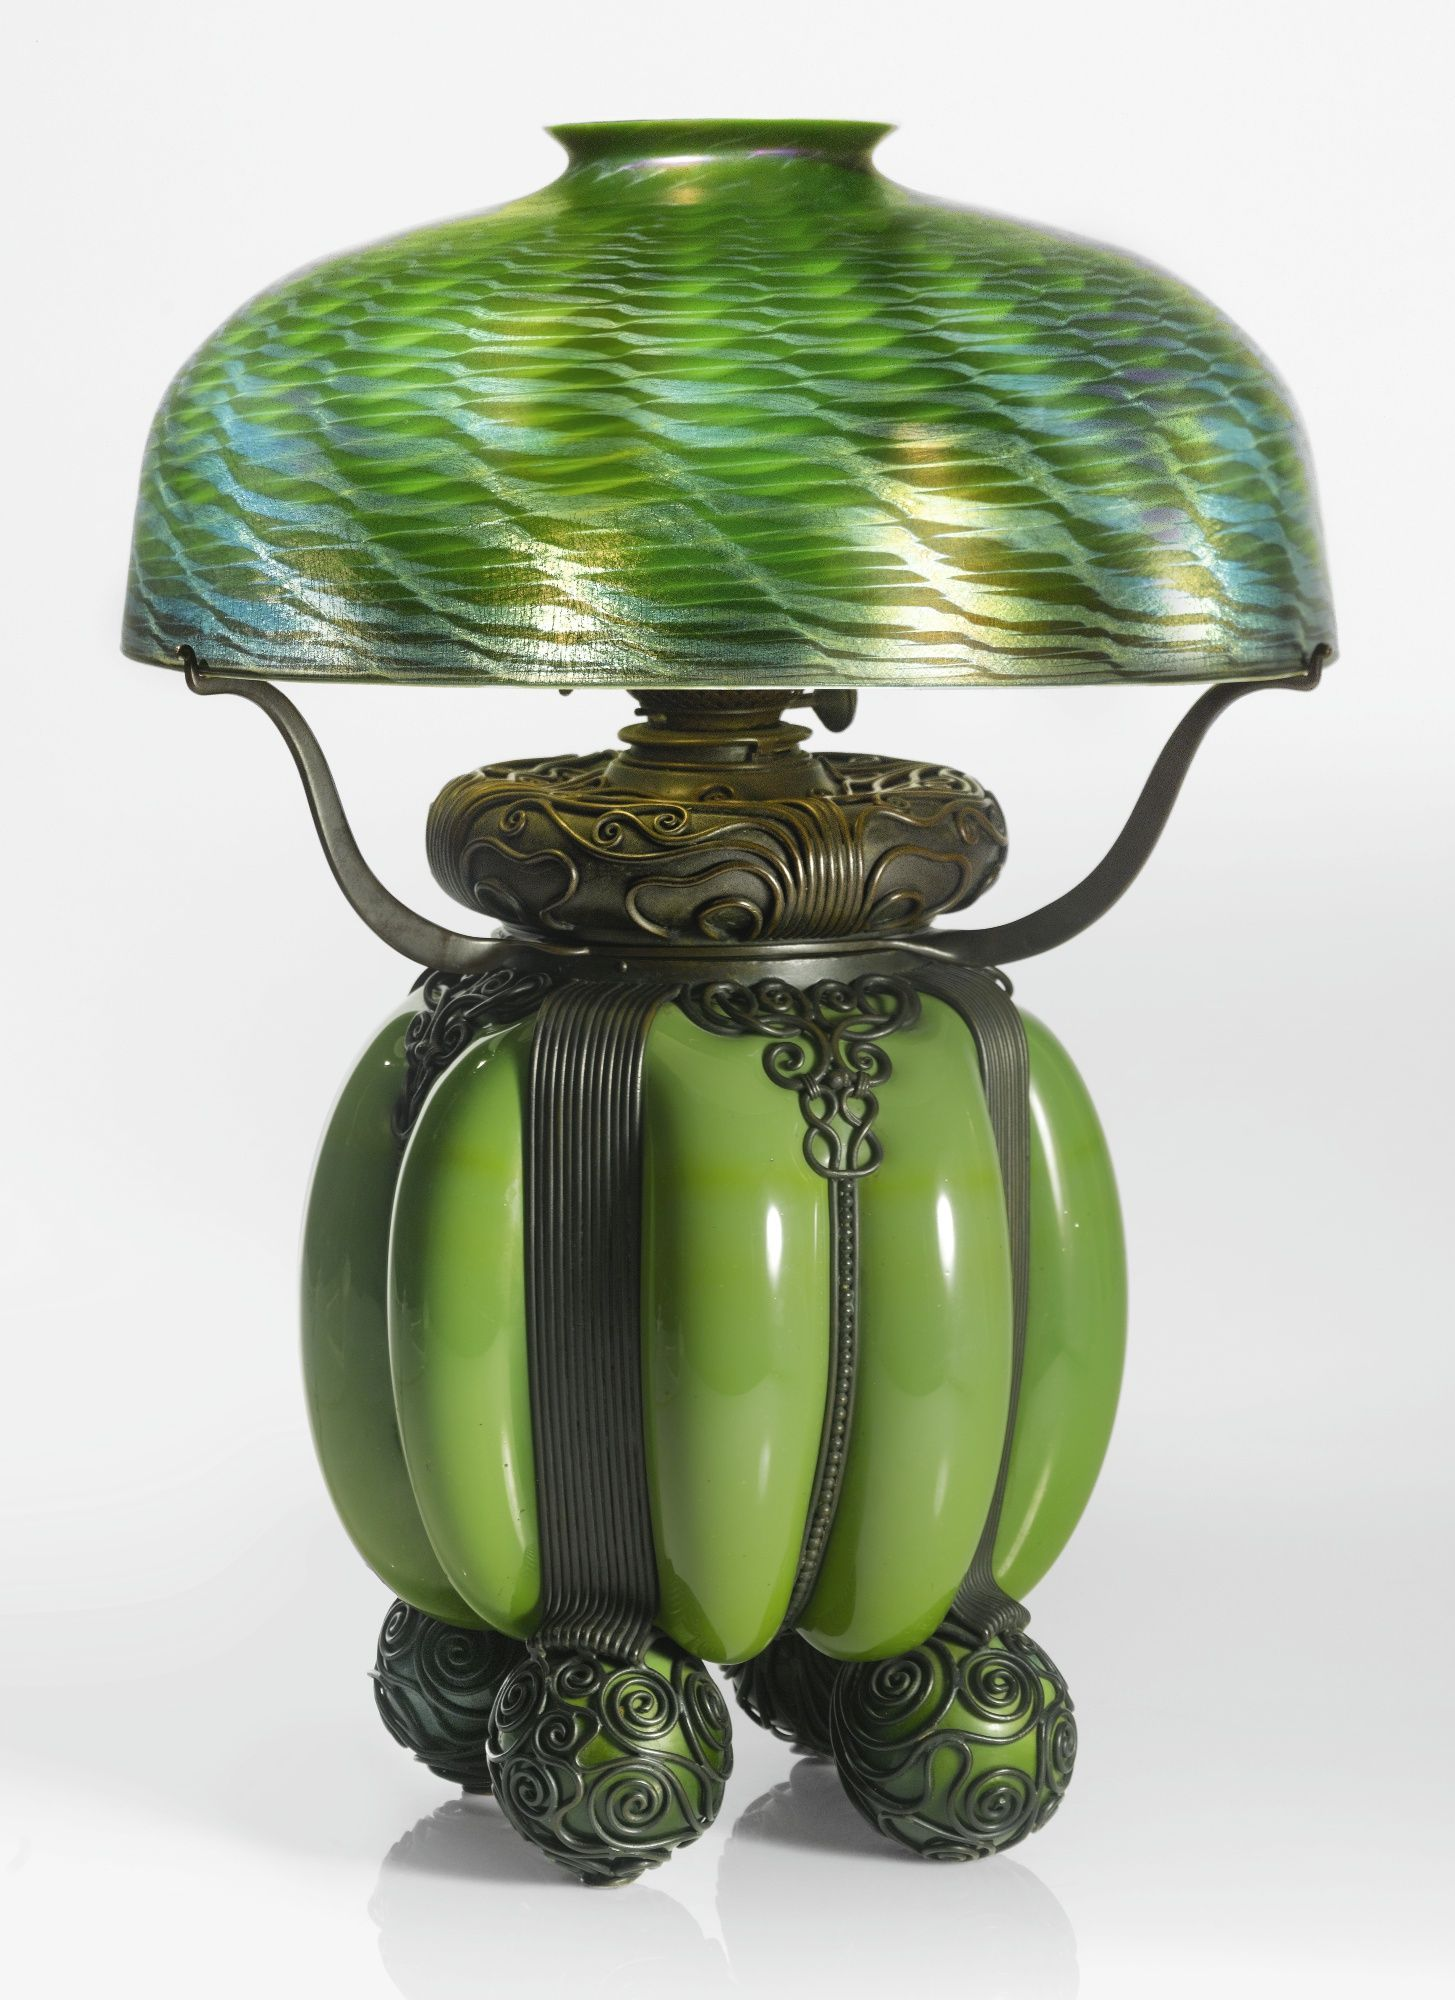 Tiffany Studios An Early And Rare Kerosene Table Lamp